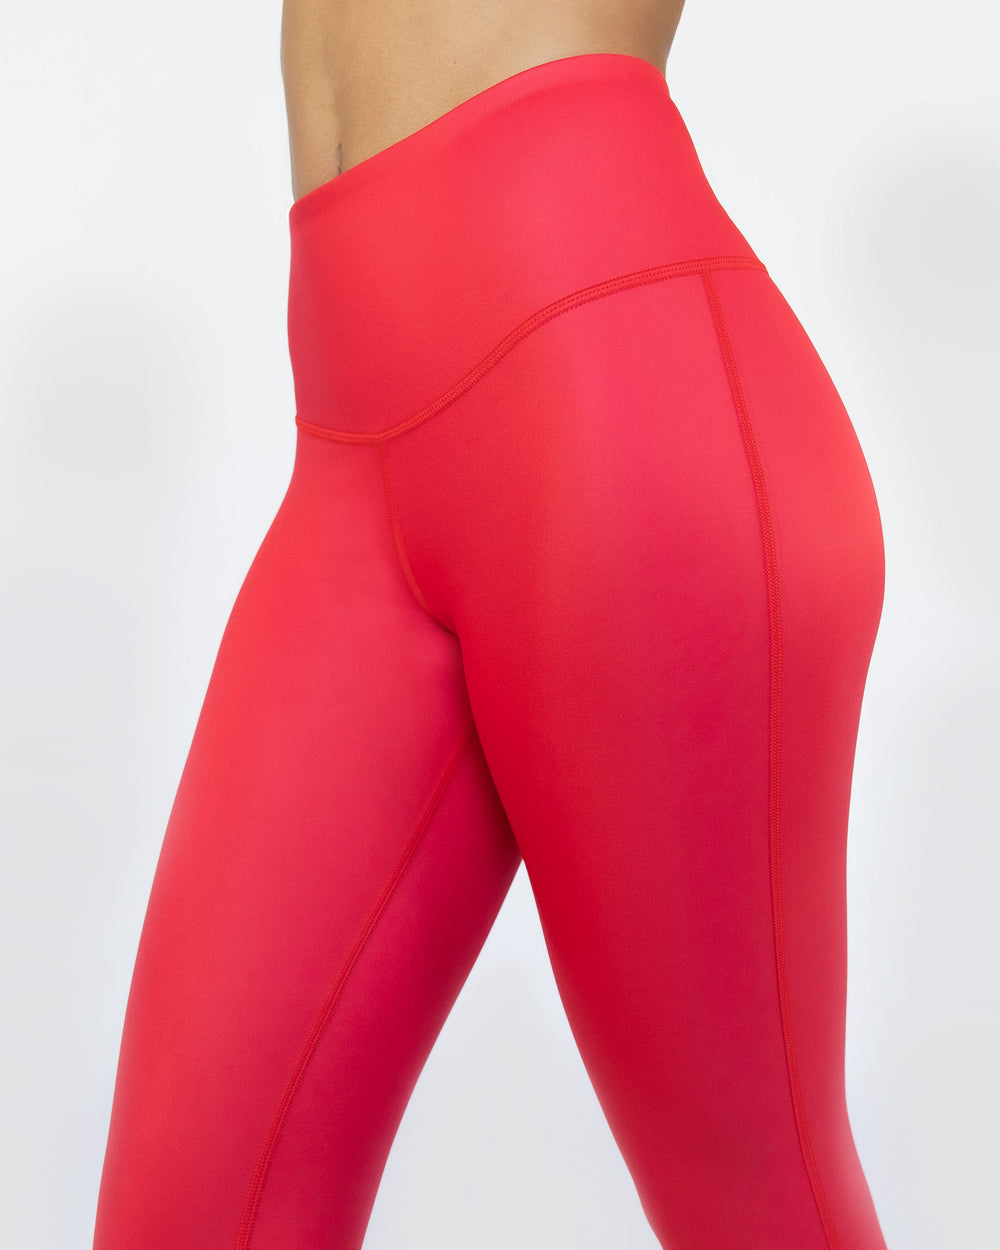 Instinct Gloss Legging - Fire Red